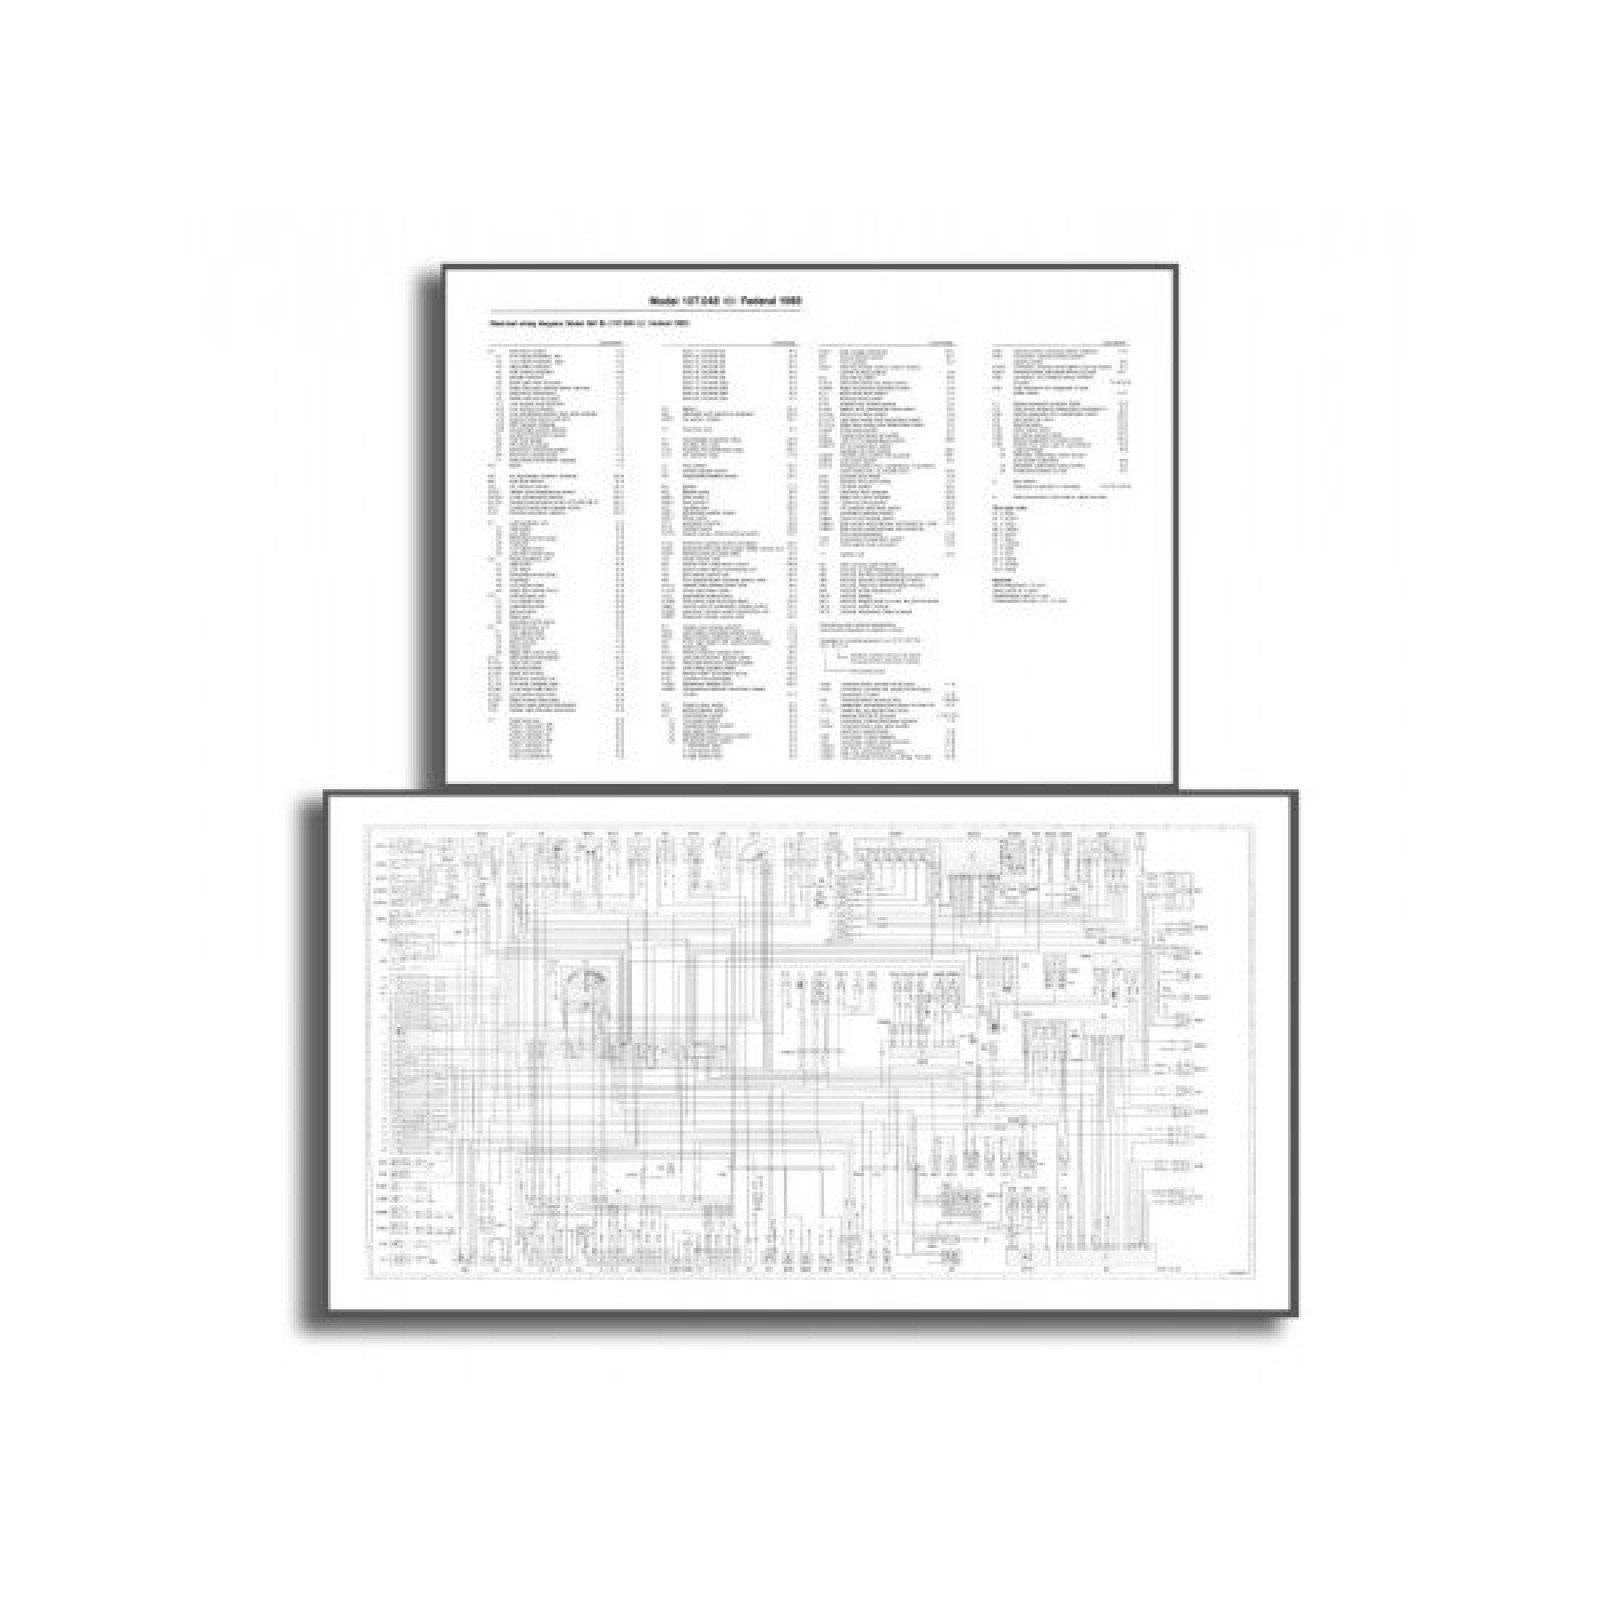 Mercedes Benz Sl 107 Wiring Diagram Pdf Download The Shop W108 Engine Parts